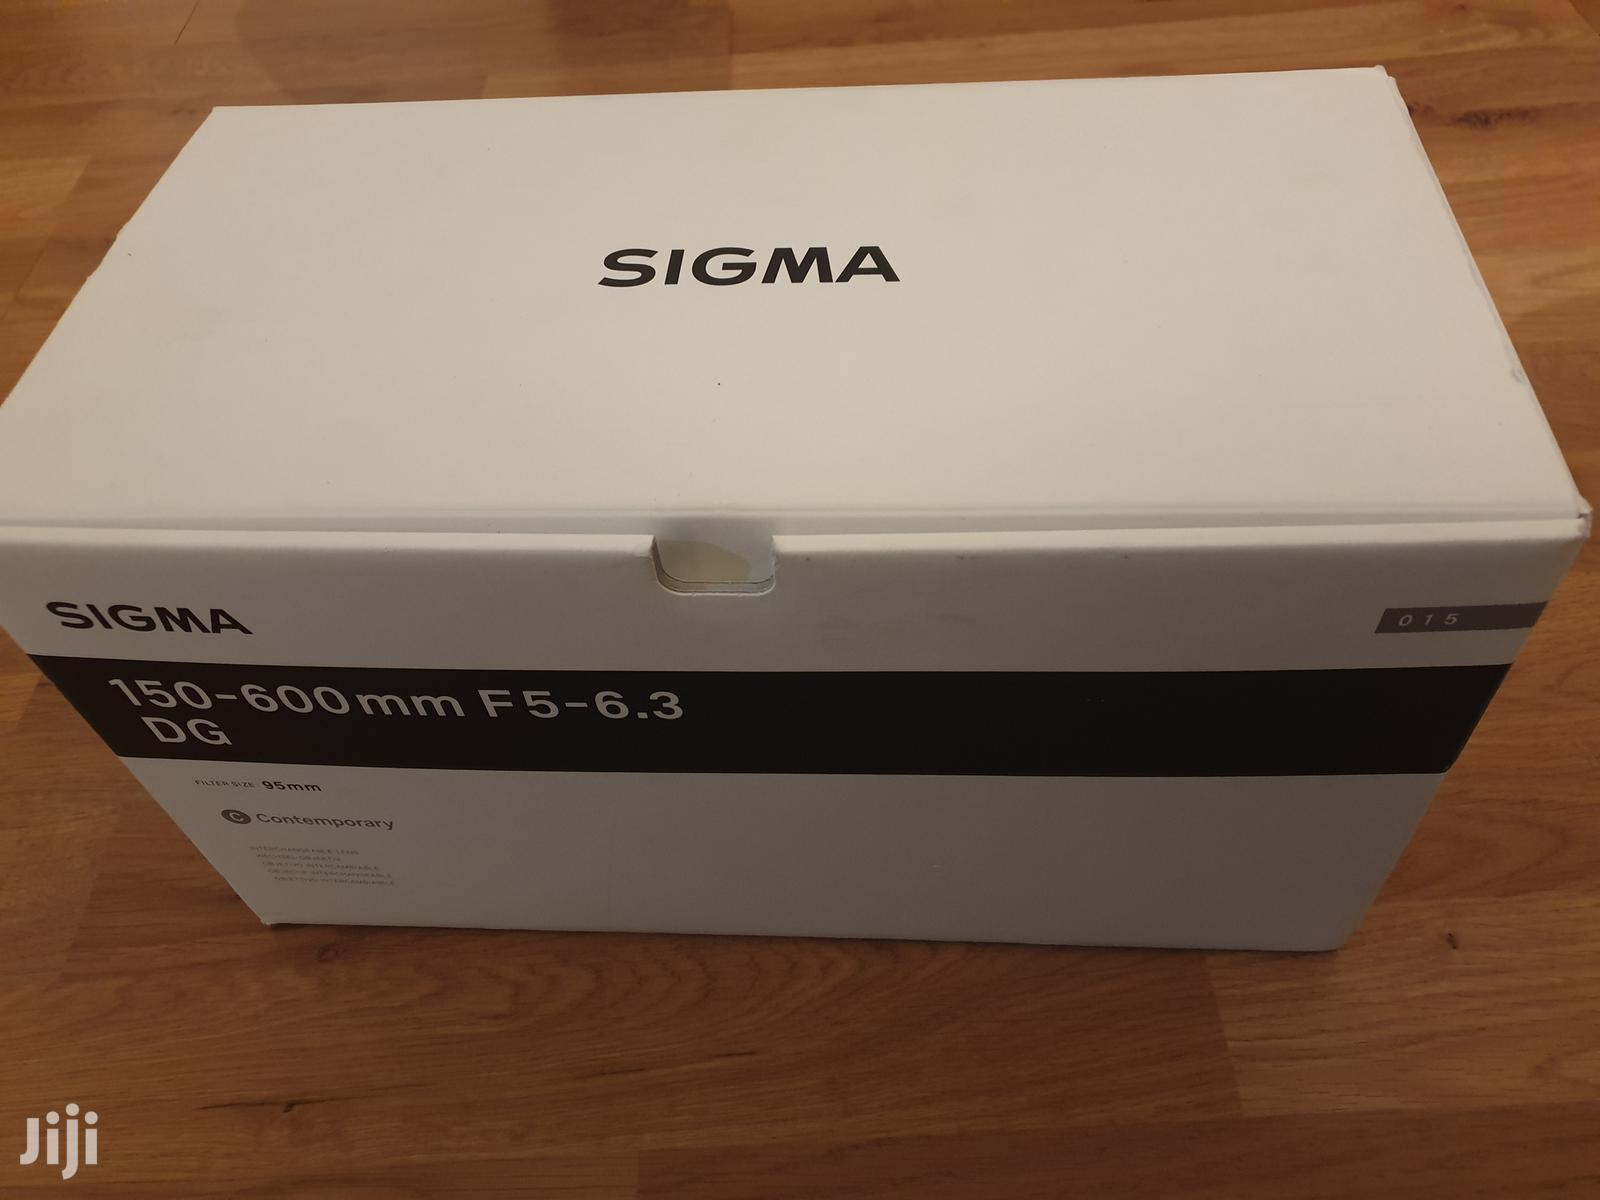 Canon Fit Sigma 24-105mm F4 Dg Art Lens | Accessories & Supplies for Electronics for sale in Kokomlemle, Greater Accra, Ghana